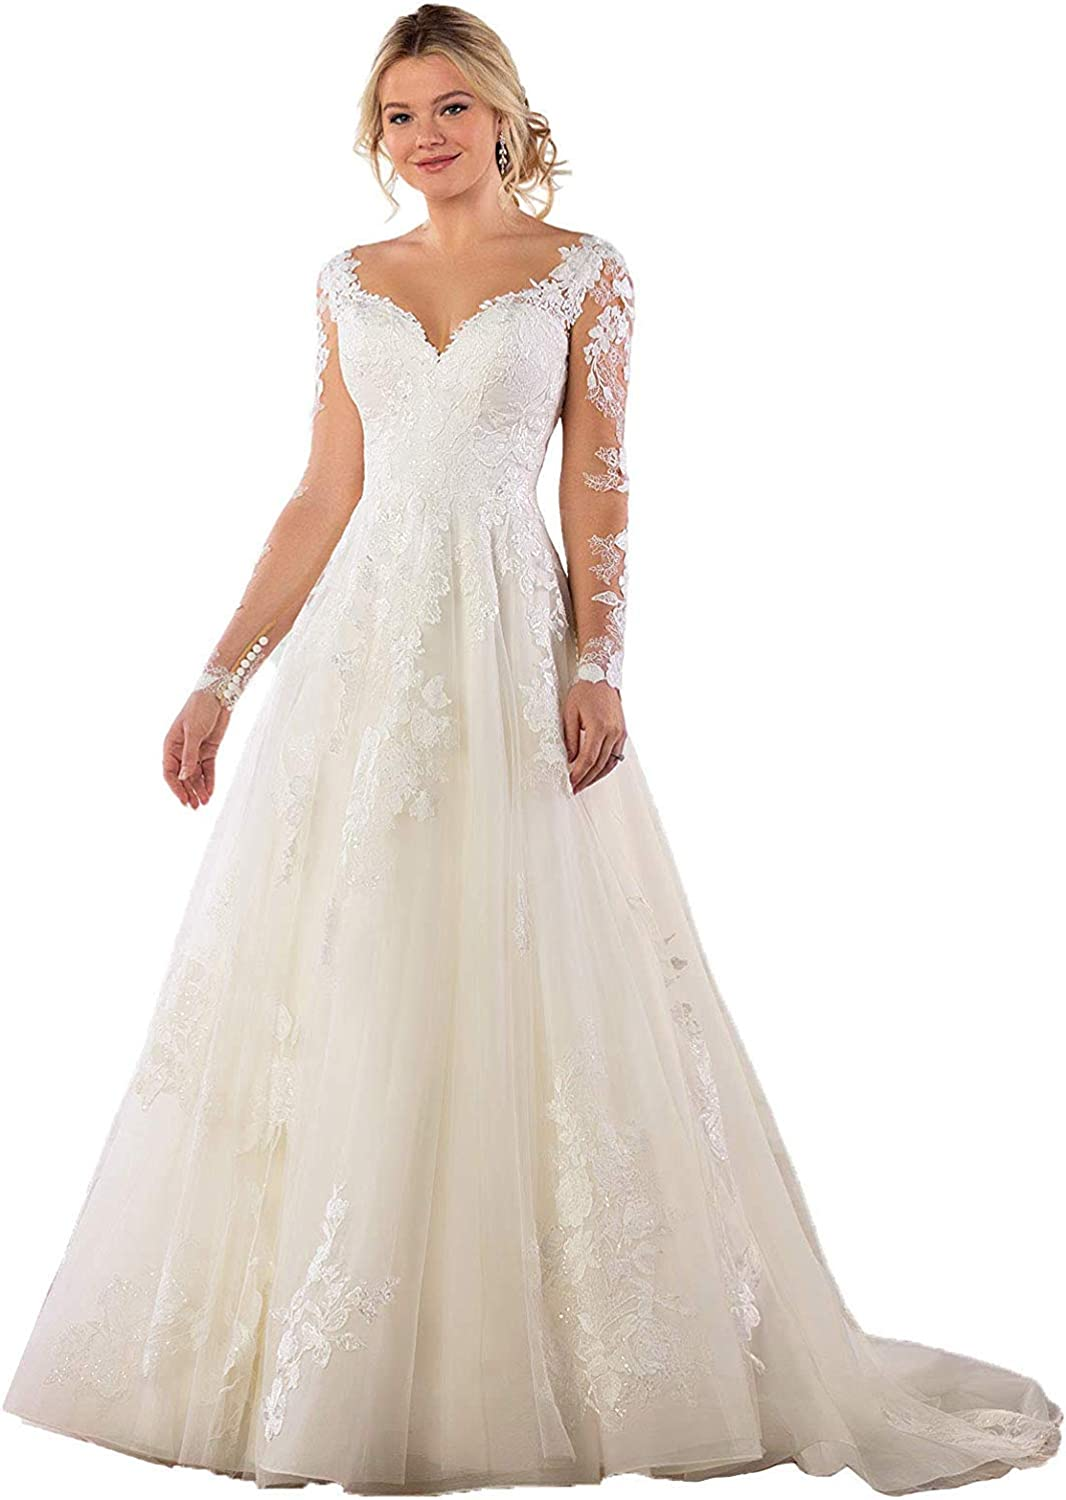 Meganbridal High quality Women's Illusion Al sold out. Long Sleeve Gown Bridal V-Neck Lace